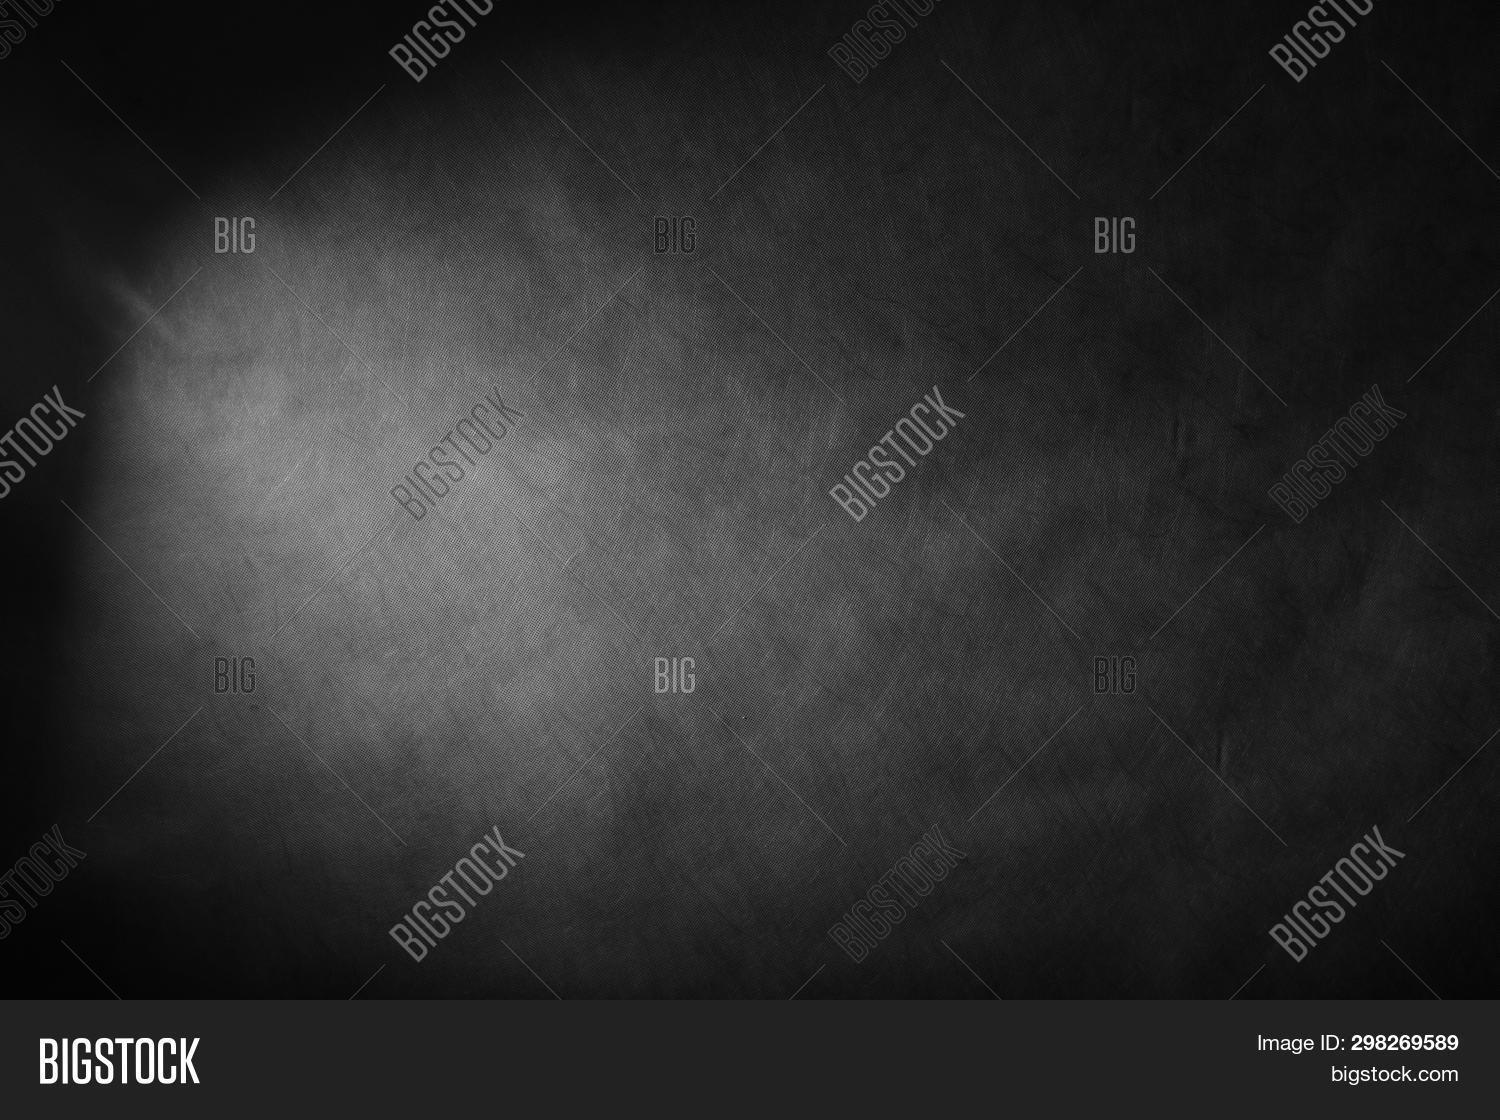 abstract,animated,animation,art,backdrop,background,banner,beautiful,black,blank,blur,blurred,bright,bulb,chalkboard,clear,cold,color,concentration,concepts,creativity,dark,design,frequency,glowing,gradient,grain,gray,grey,illuminated,light,luminosity,magic,navy,noise,pattern,power,shade,sharp,smooth,softness,space,studio,texture,transparent,wallpaper,white